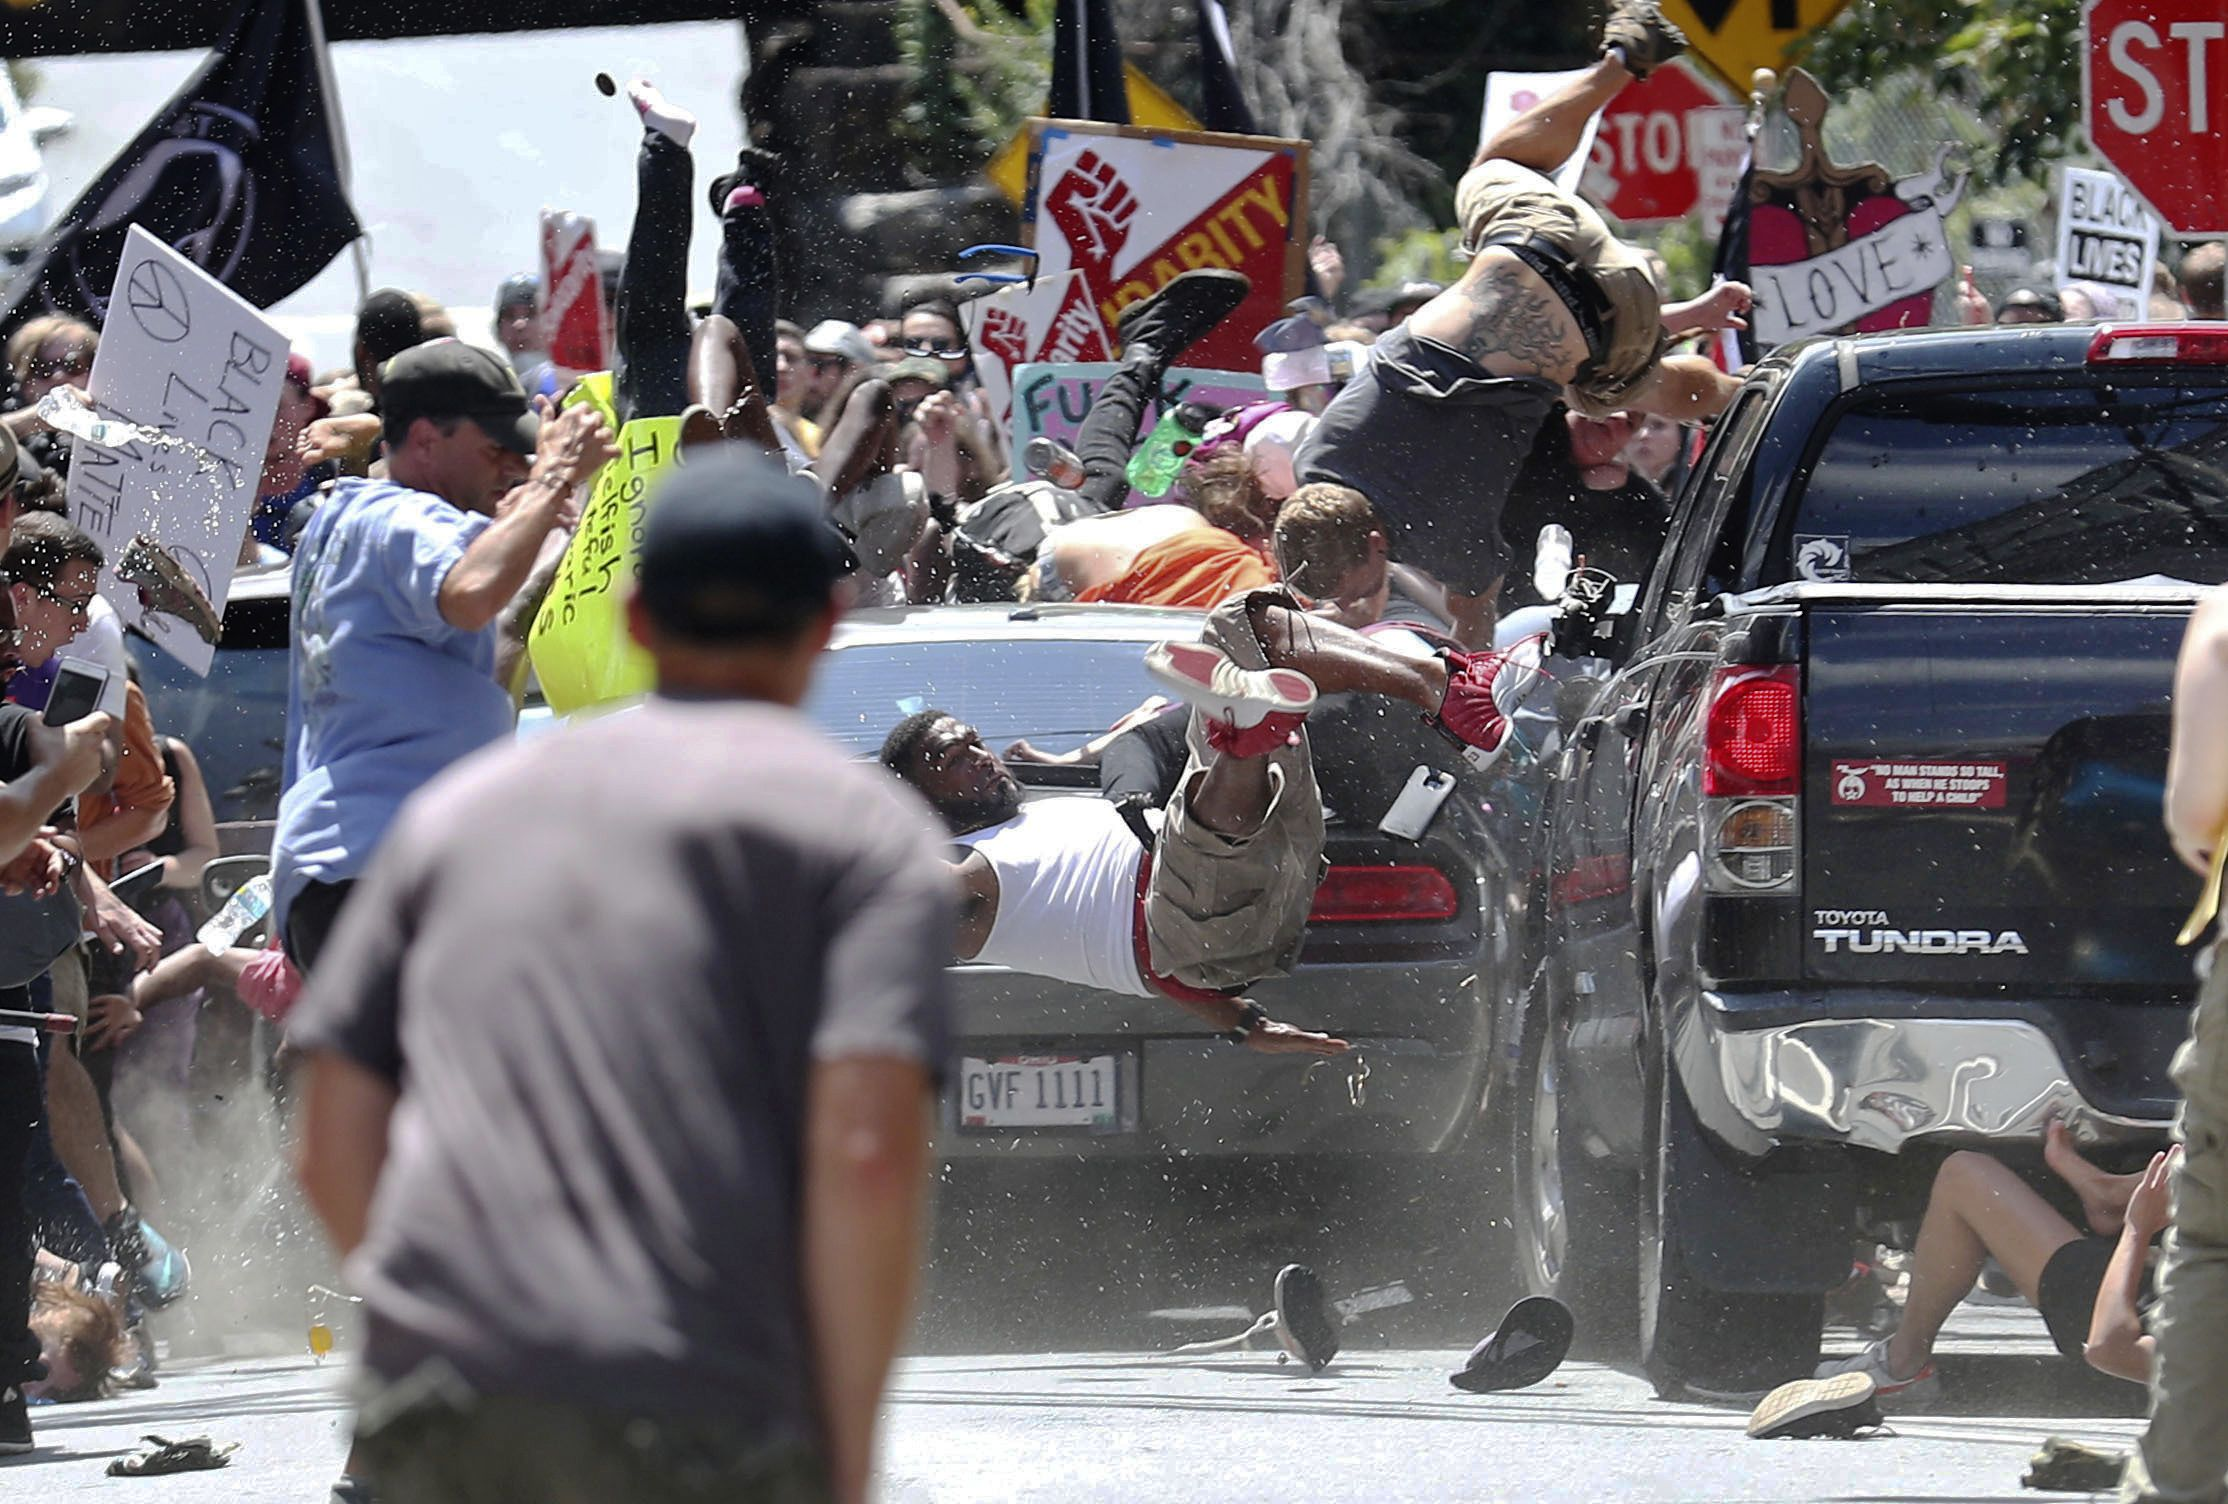 The Uncanny Echoes of Picasso's 'Guernica' in Kelly's Charlottesville Photograph